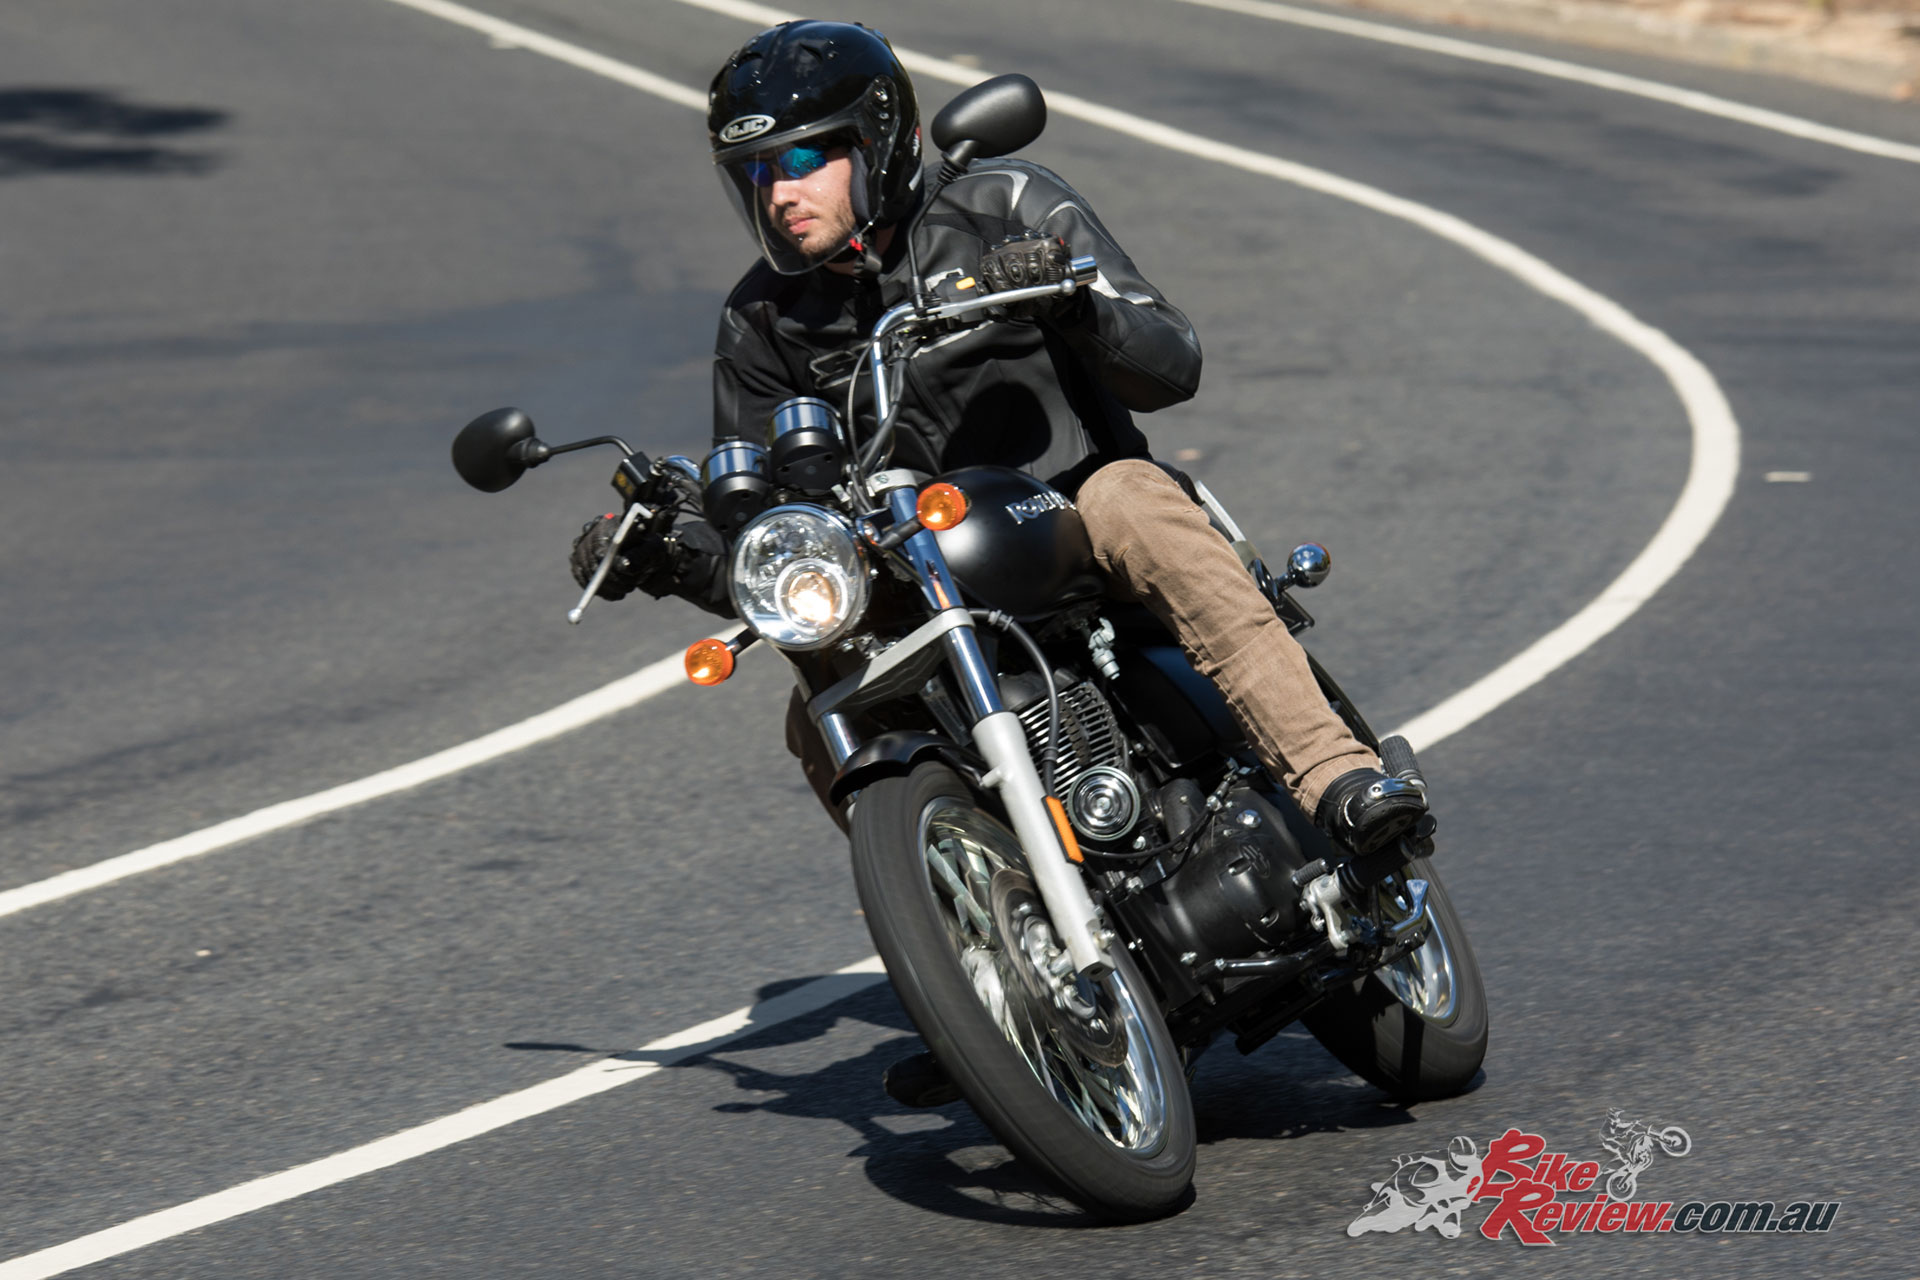 Typical of Royal Enfield the Rumbler 350 is an authentic and characterful experience